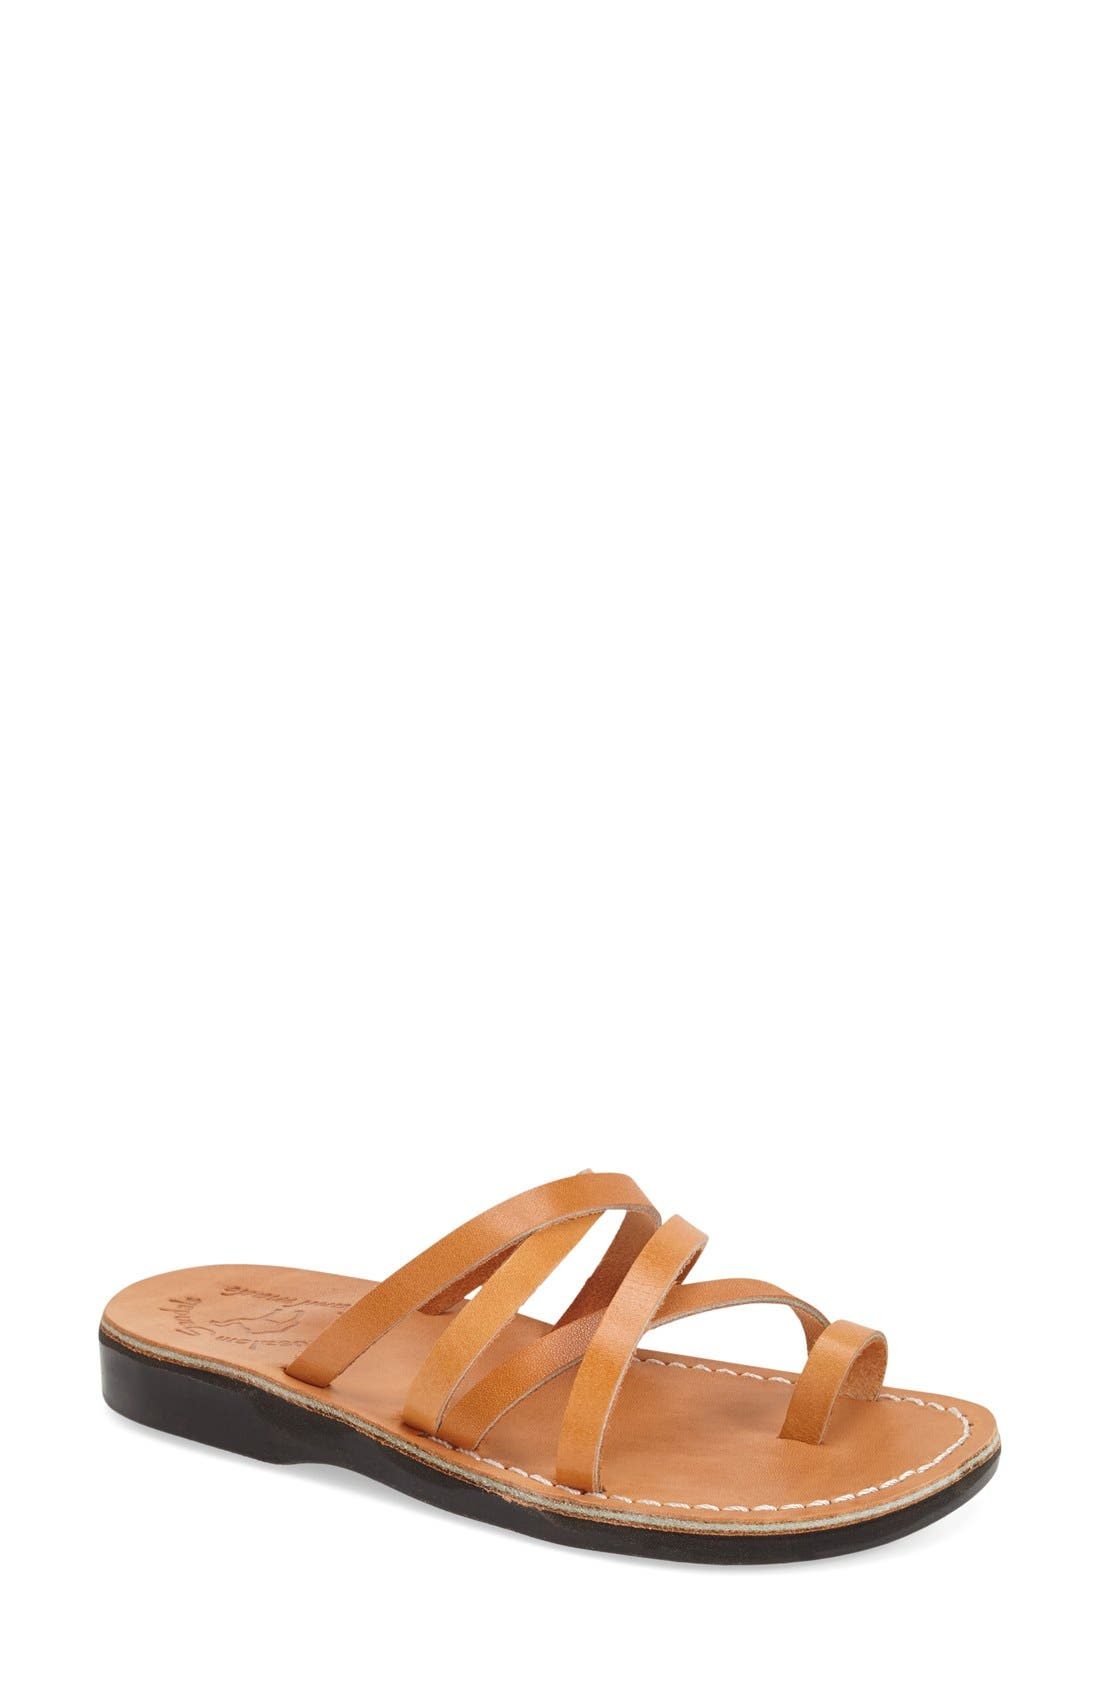 Alternate Image 1 Selected - Jerusalem Sandals 'Ariel' Strappy Slide Sandal (Women)